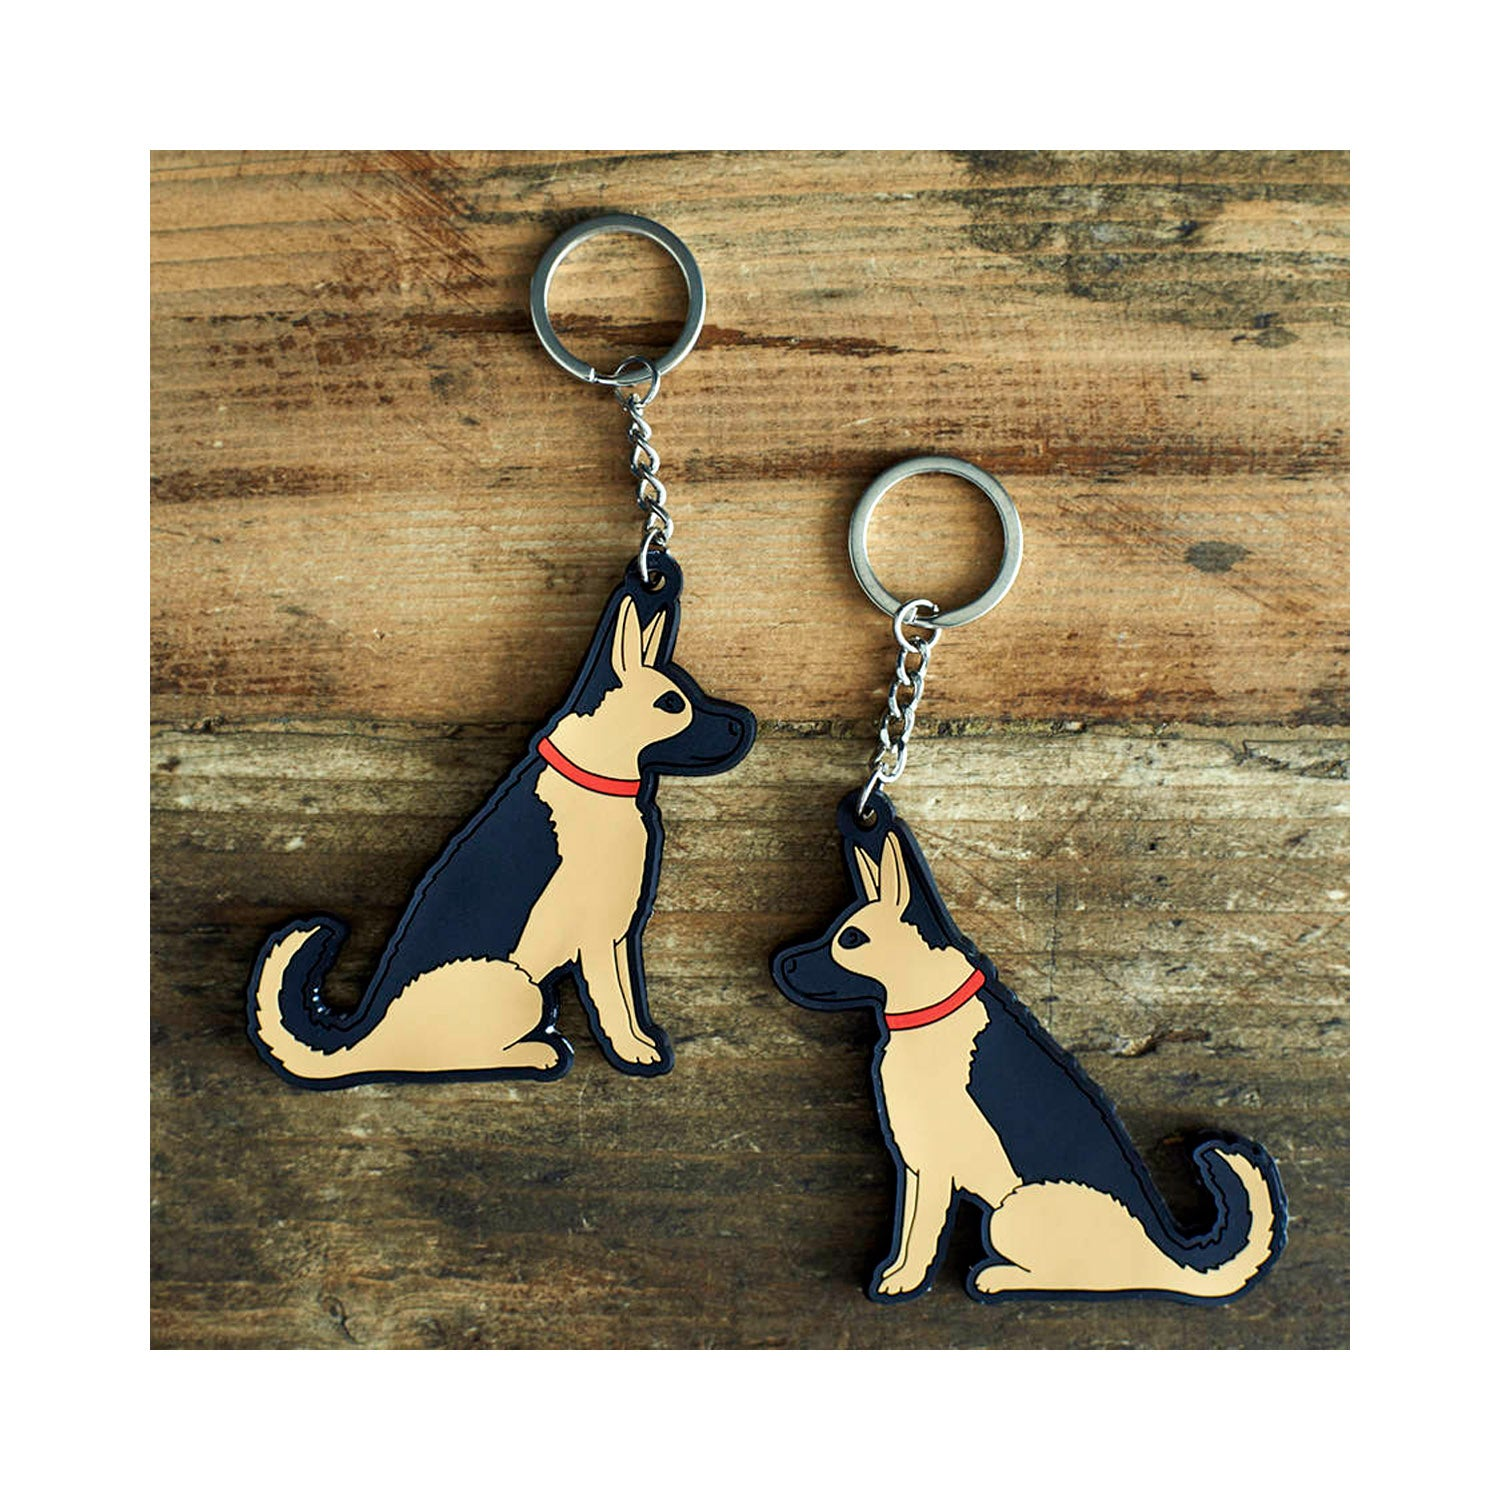 Dog Lover Gifts available at Dog Krazy Gifts - Sebastian The German Shepherd Keyring - part of the Sweet William range available from Dog Krazy Gifts